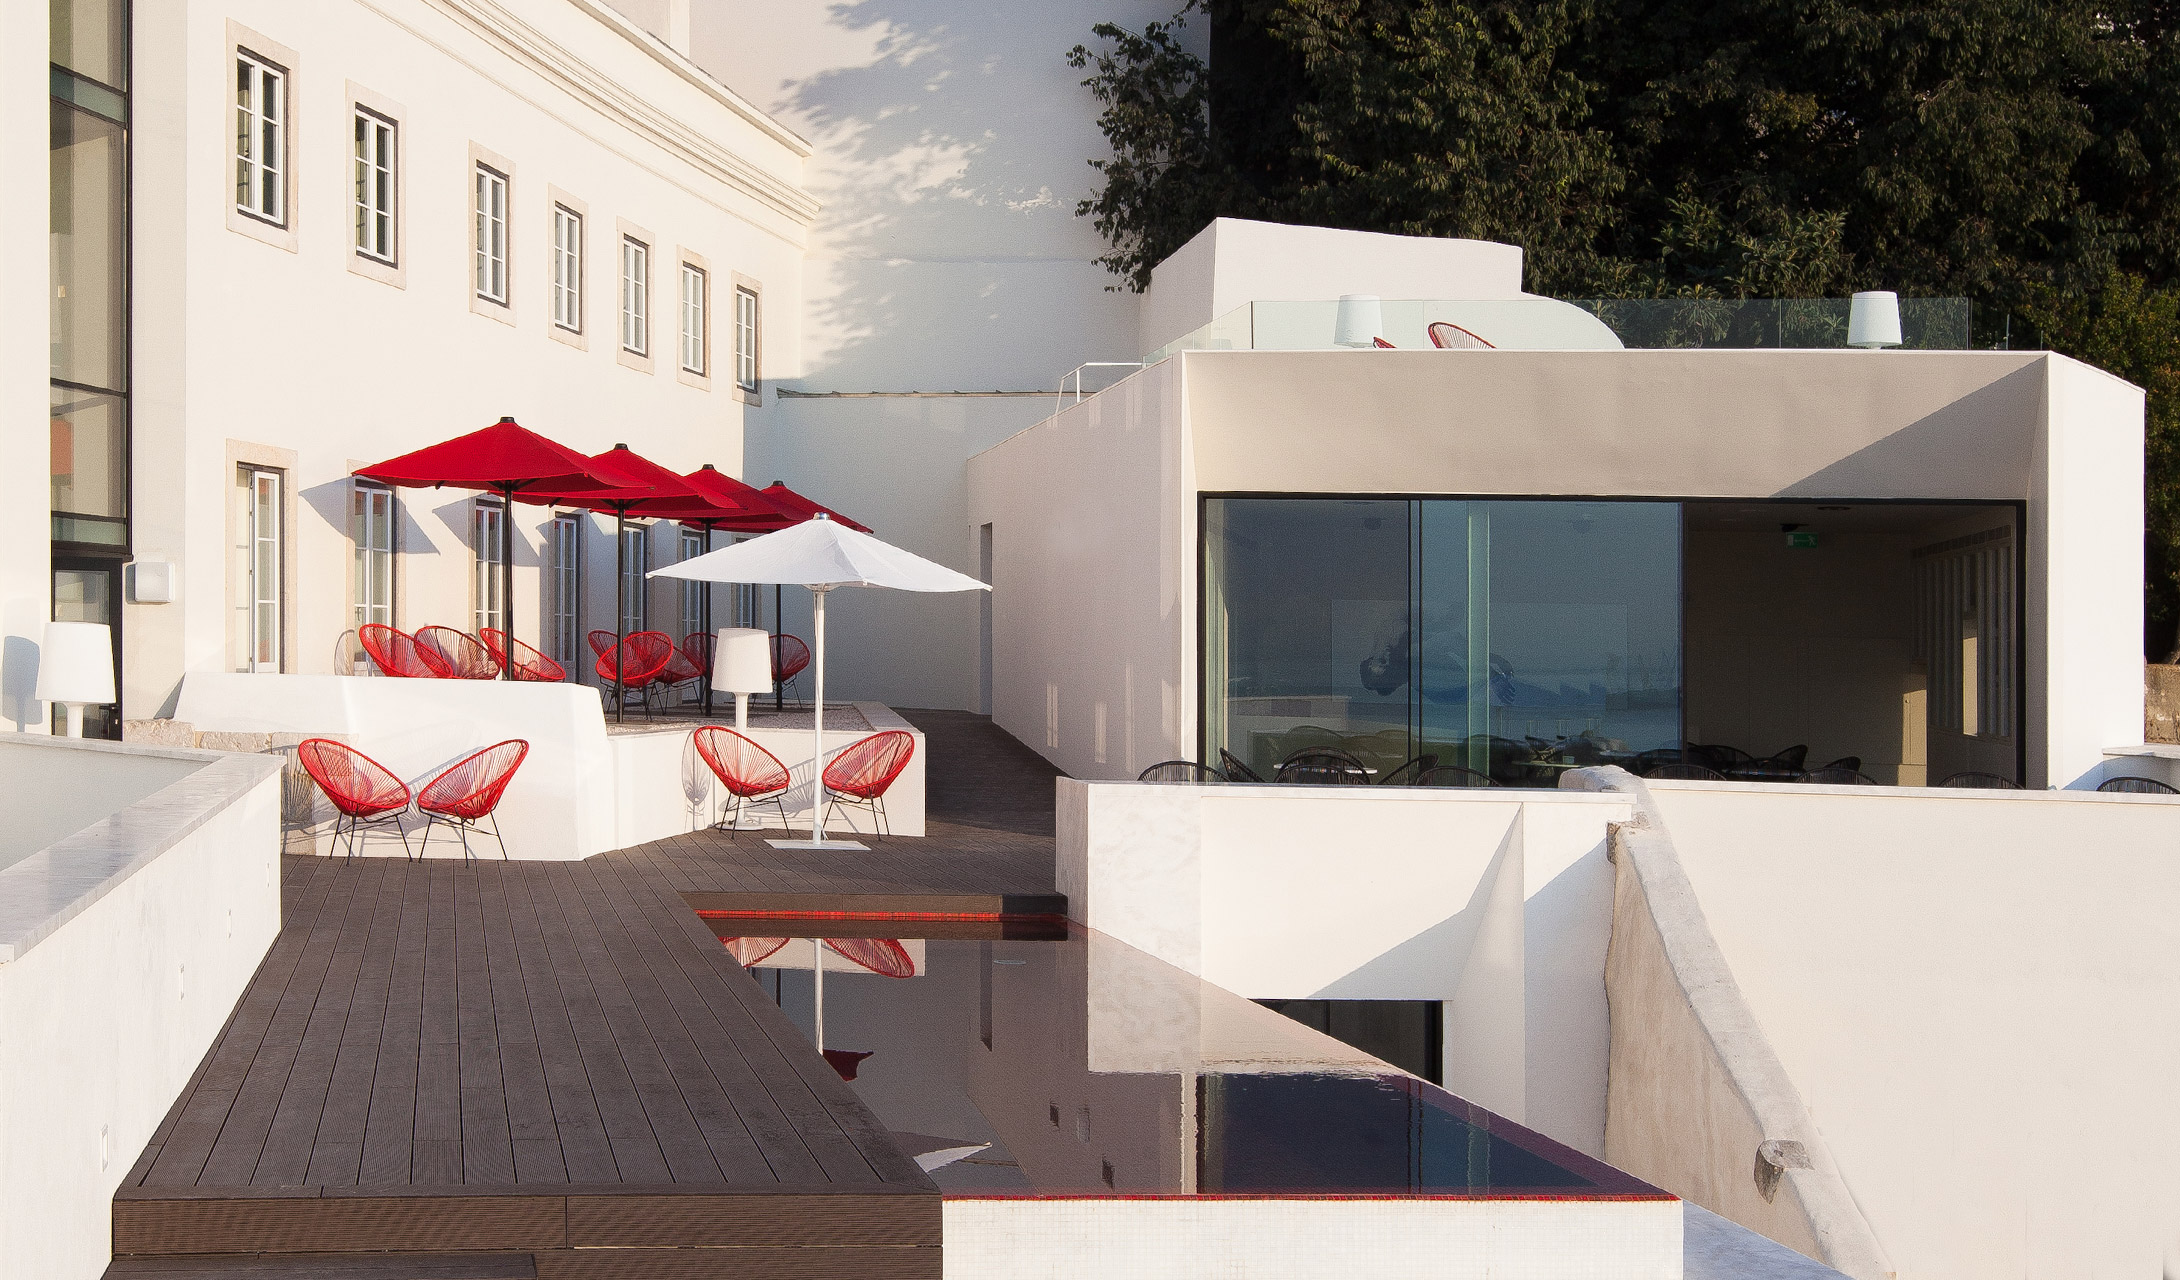 The Best Rooftop Bars in Portugal best rooftop bars in portugal The Best Rooftop Bars in Portugal Memmo Alfama 3